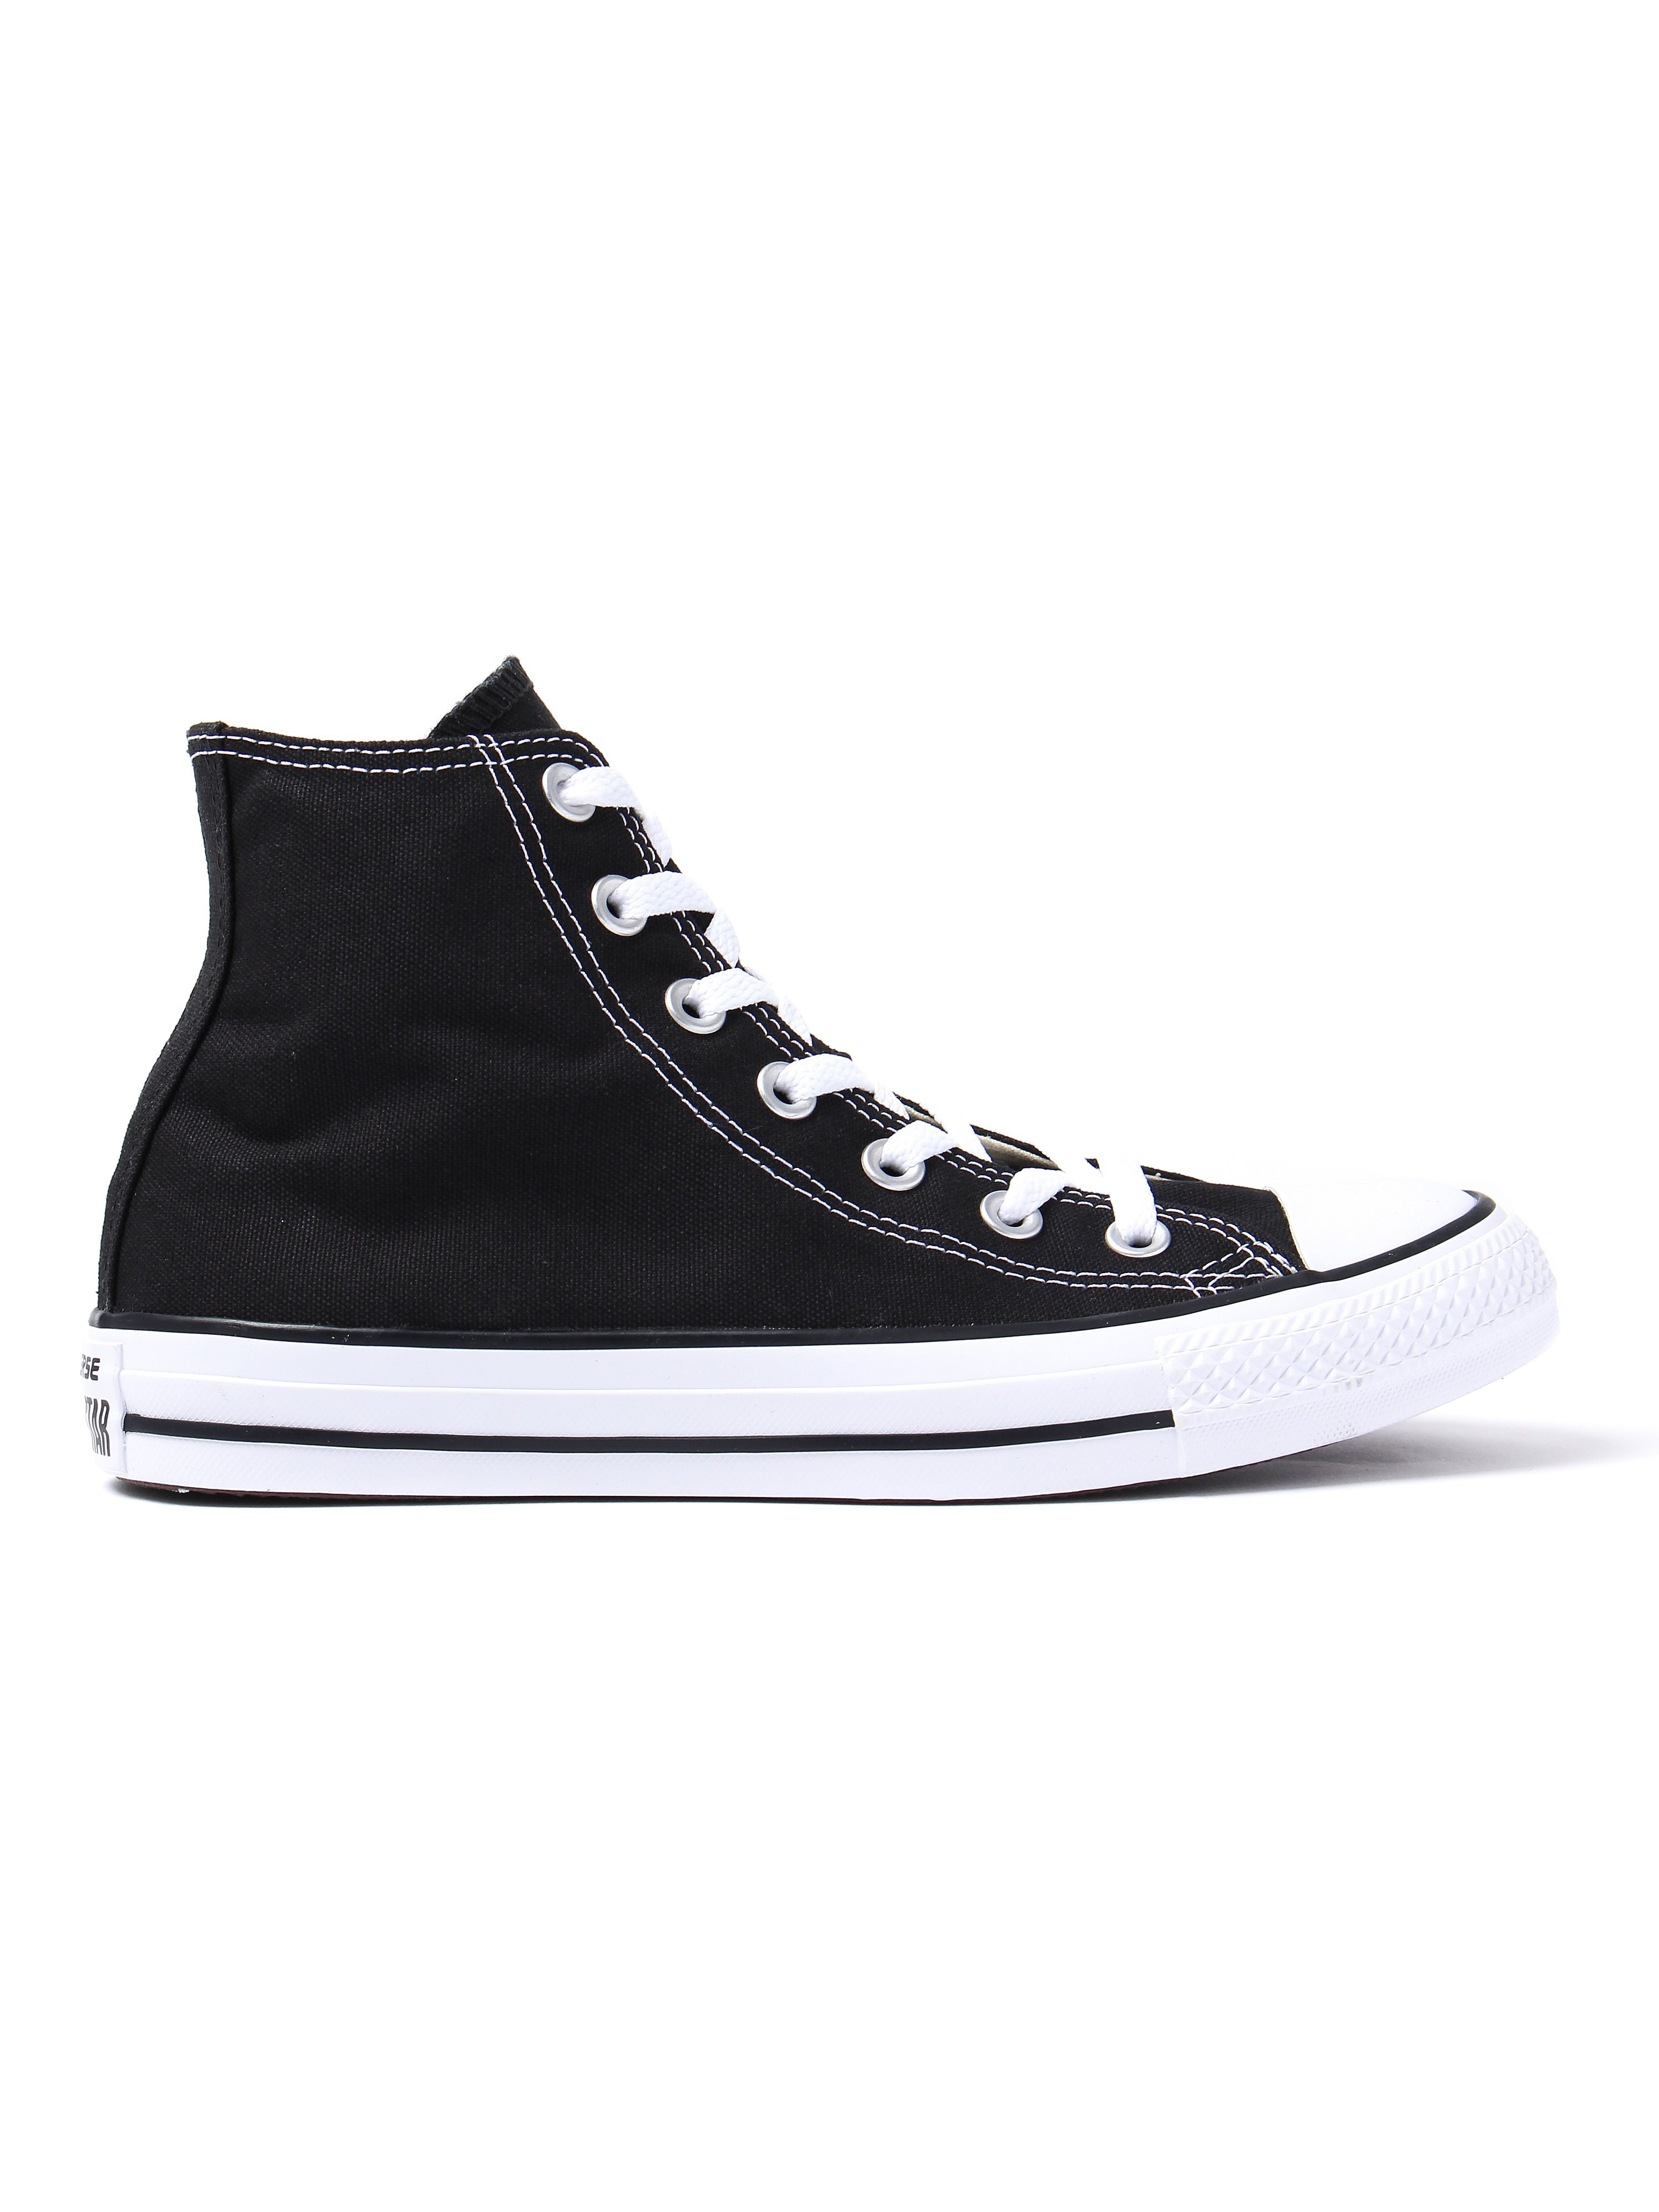 Converse Women's Chuck Taylor All Star High Top Canvas Trainers - Black